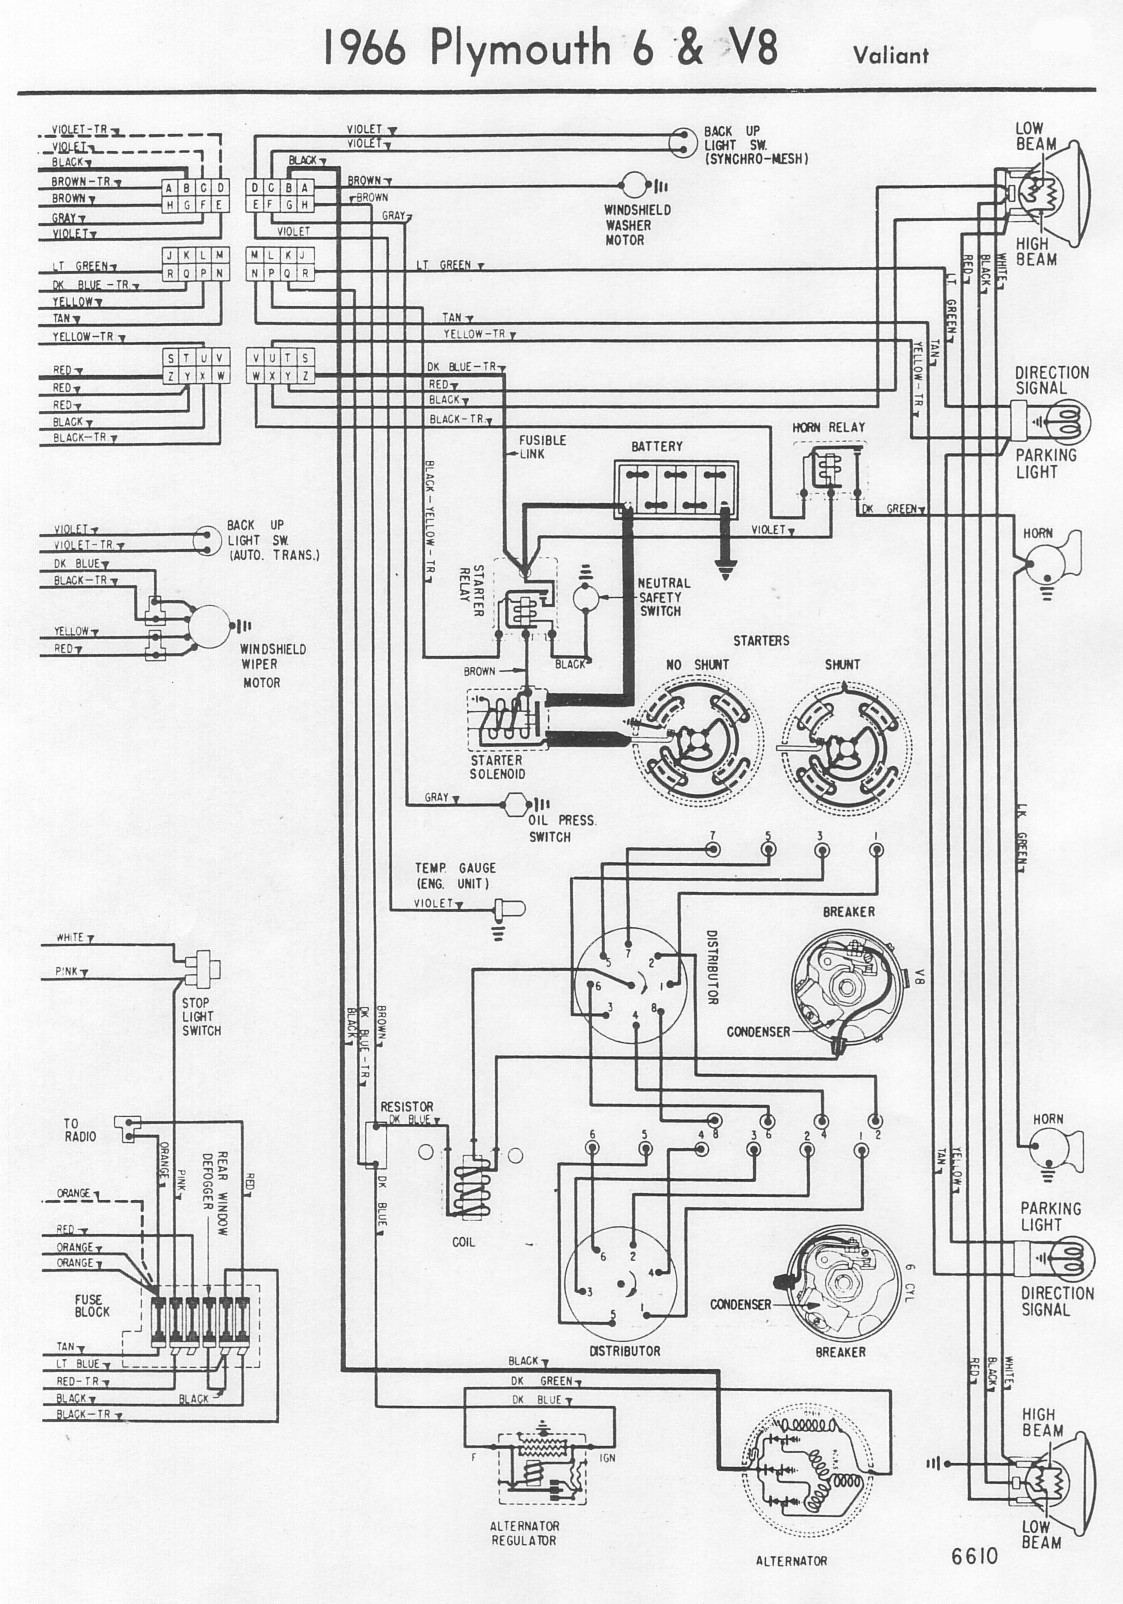 71 plymouth gtx wiring diagram free picture